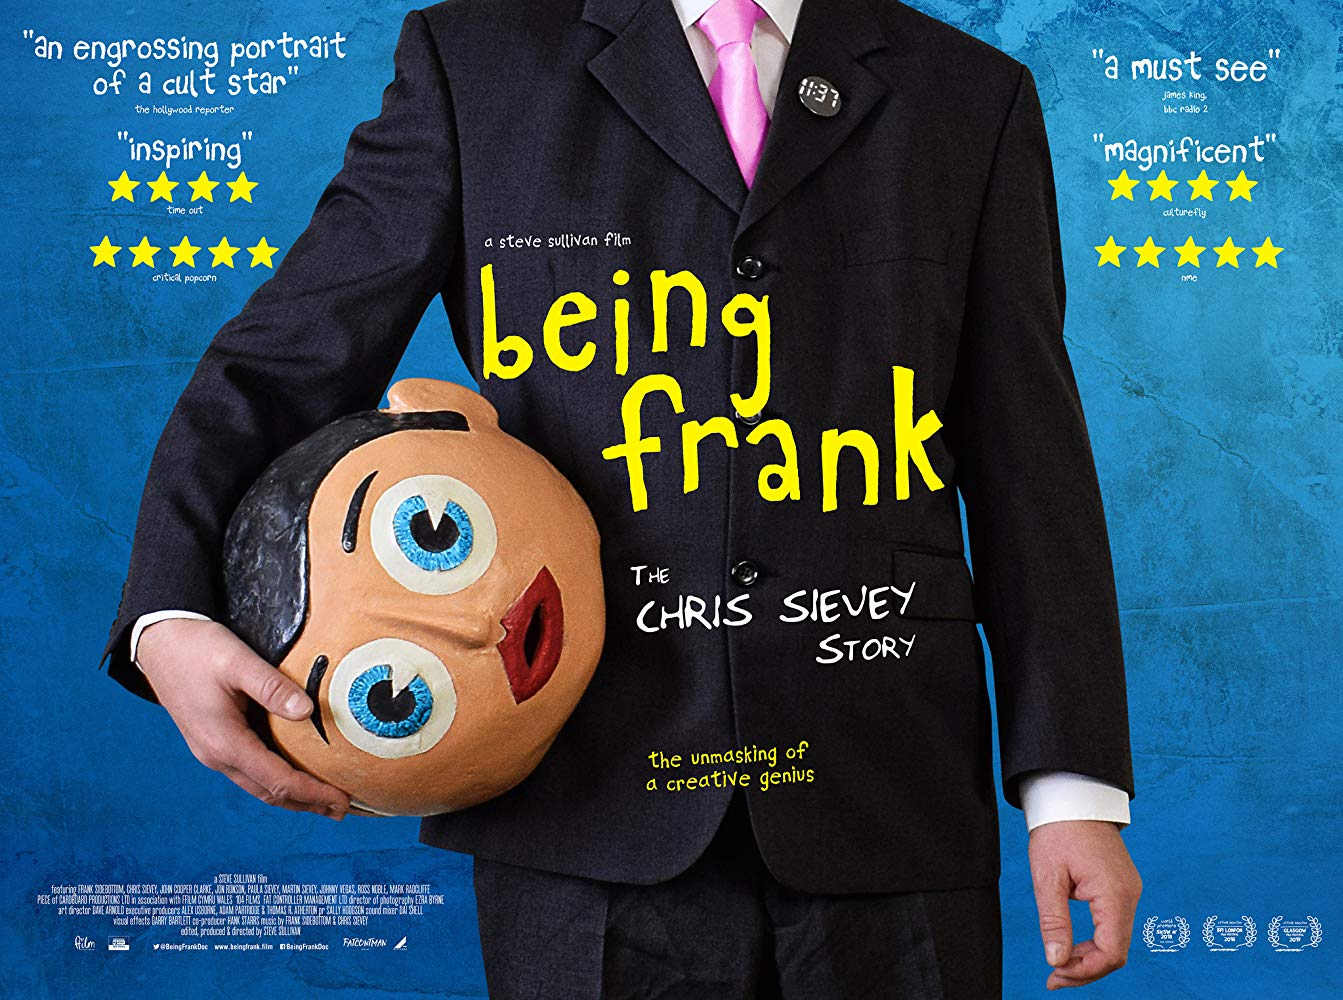 Being Frank The Chris Sievey Story 2018 LiMiTED 1080p BluRay x264-CADAVER